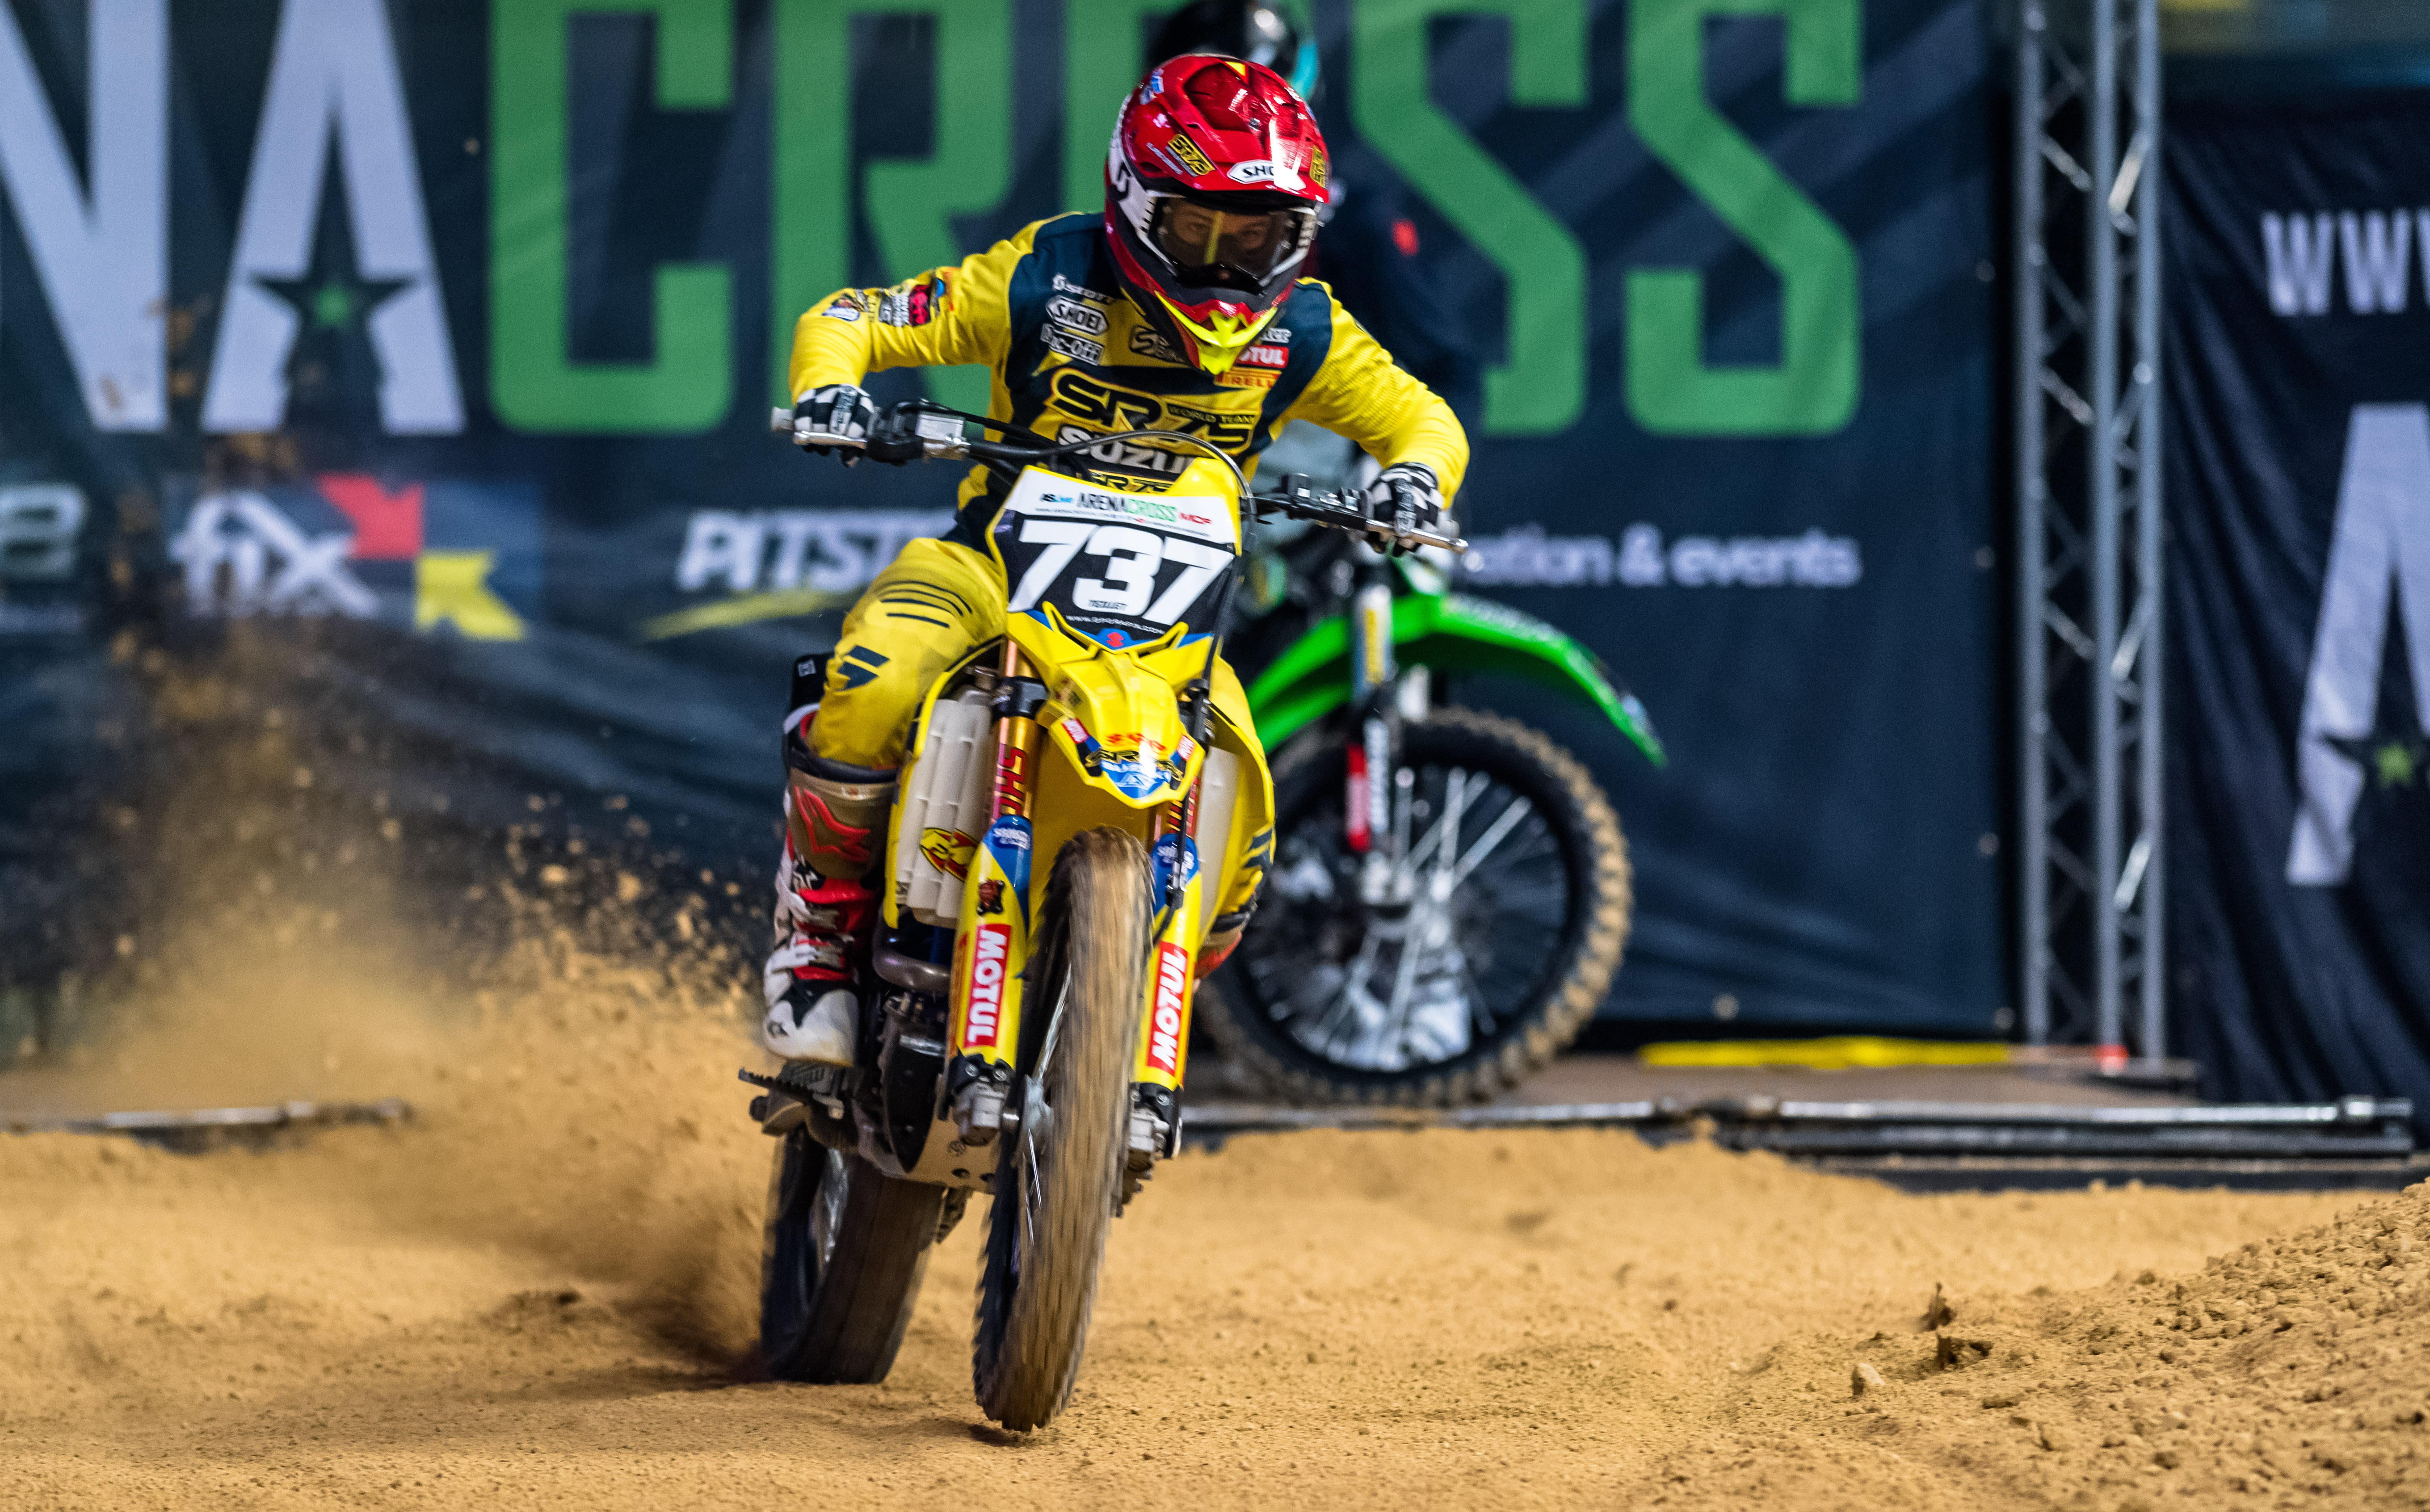 SR75 SUZUKI SHINES IN ARENACROSS ROUND 5 QUALIFYING